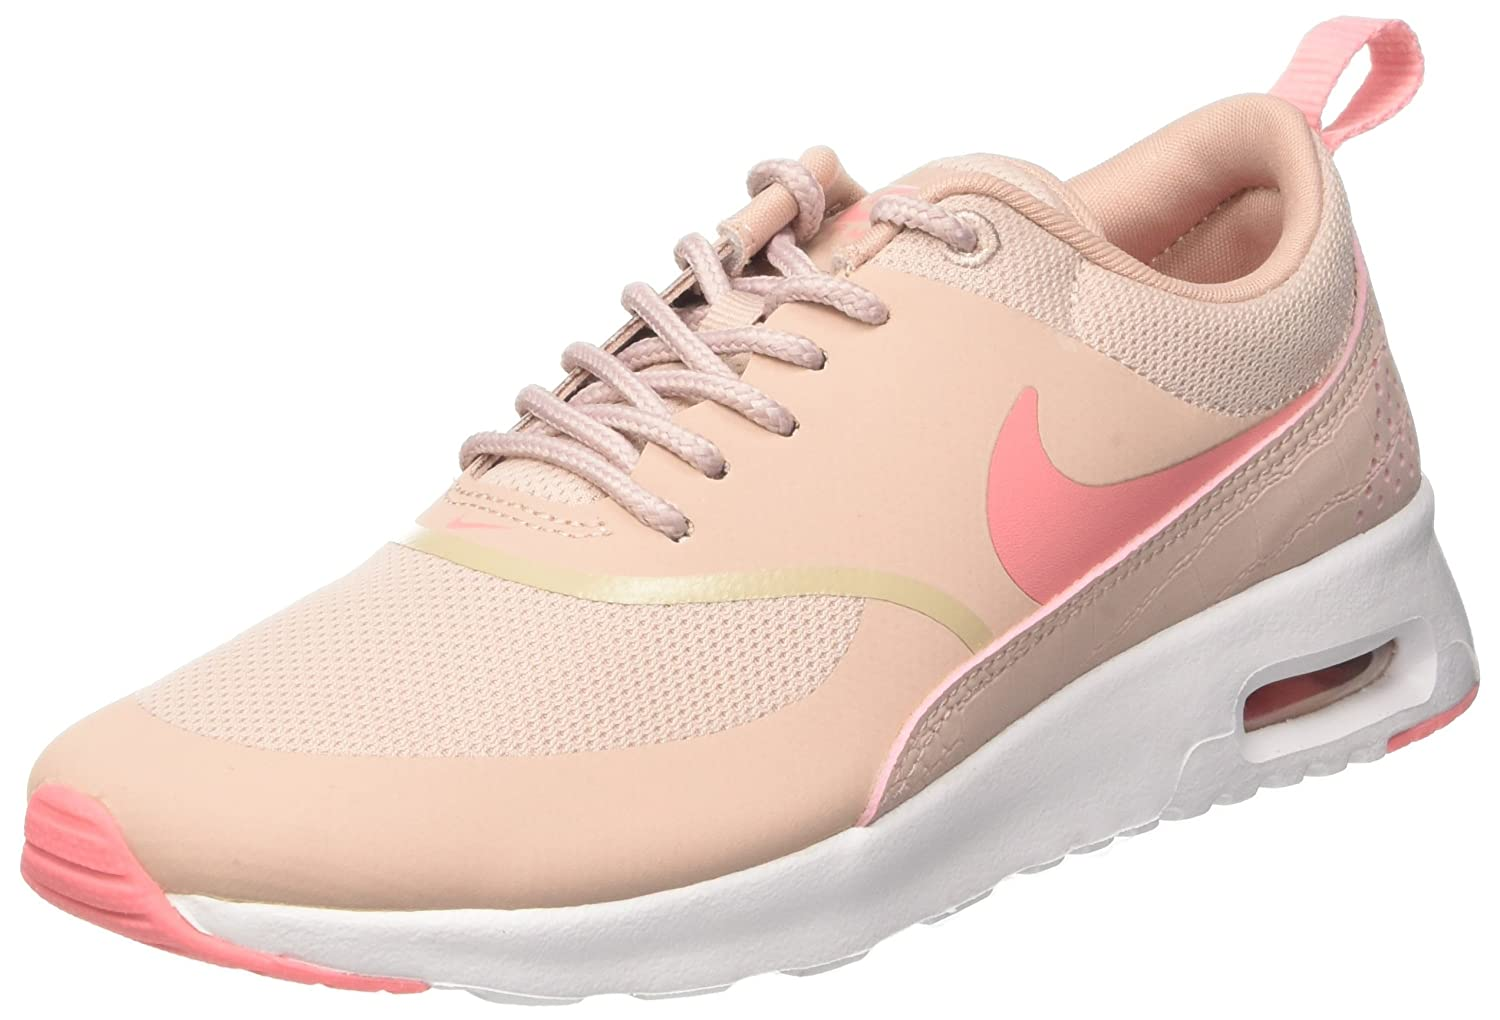 NIKE Women's Air Max Thea Low-Top Sneakers, Black B0059BX1AG 5.5 B(M) US|Pink Oxford/Bright Melon-white